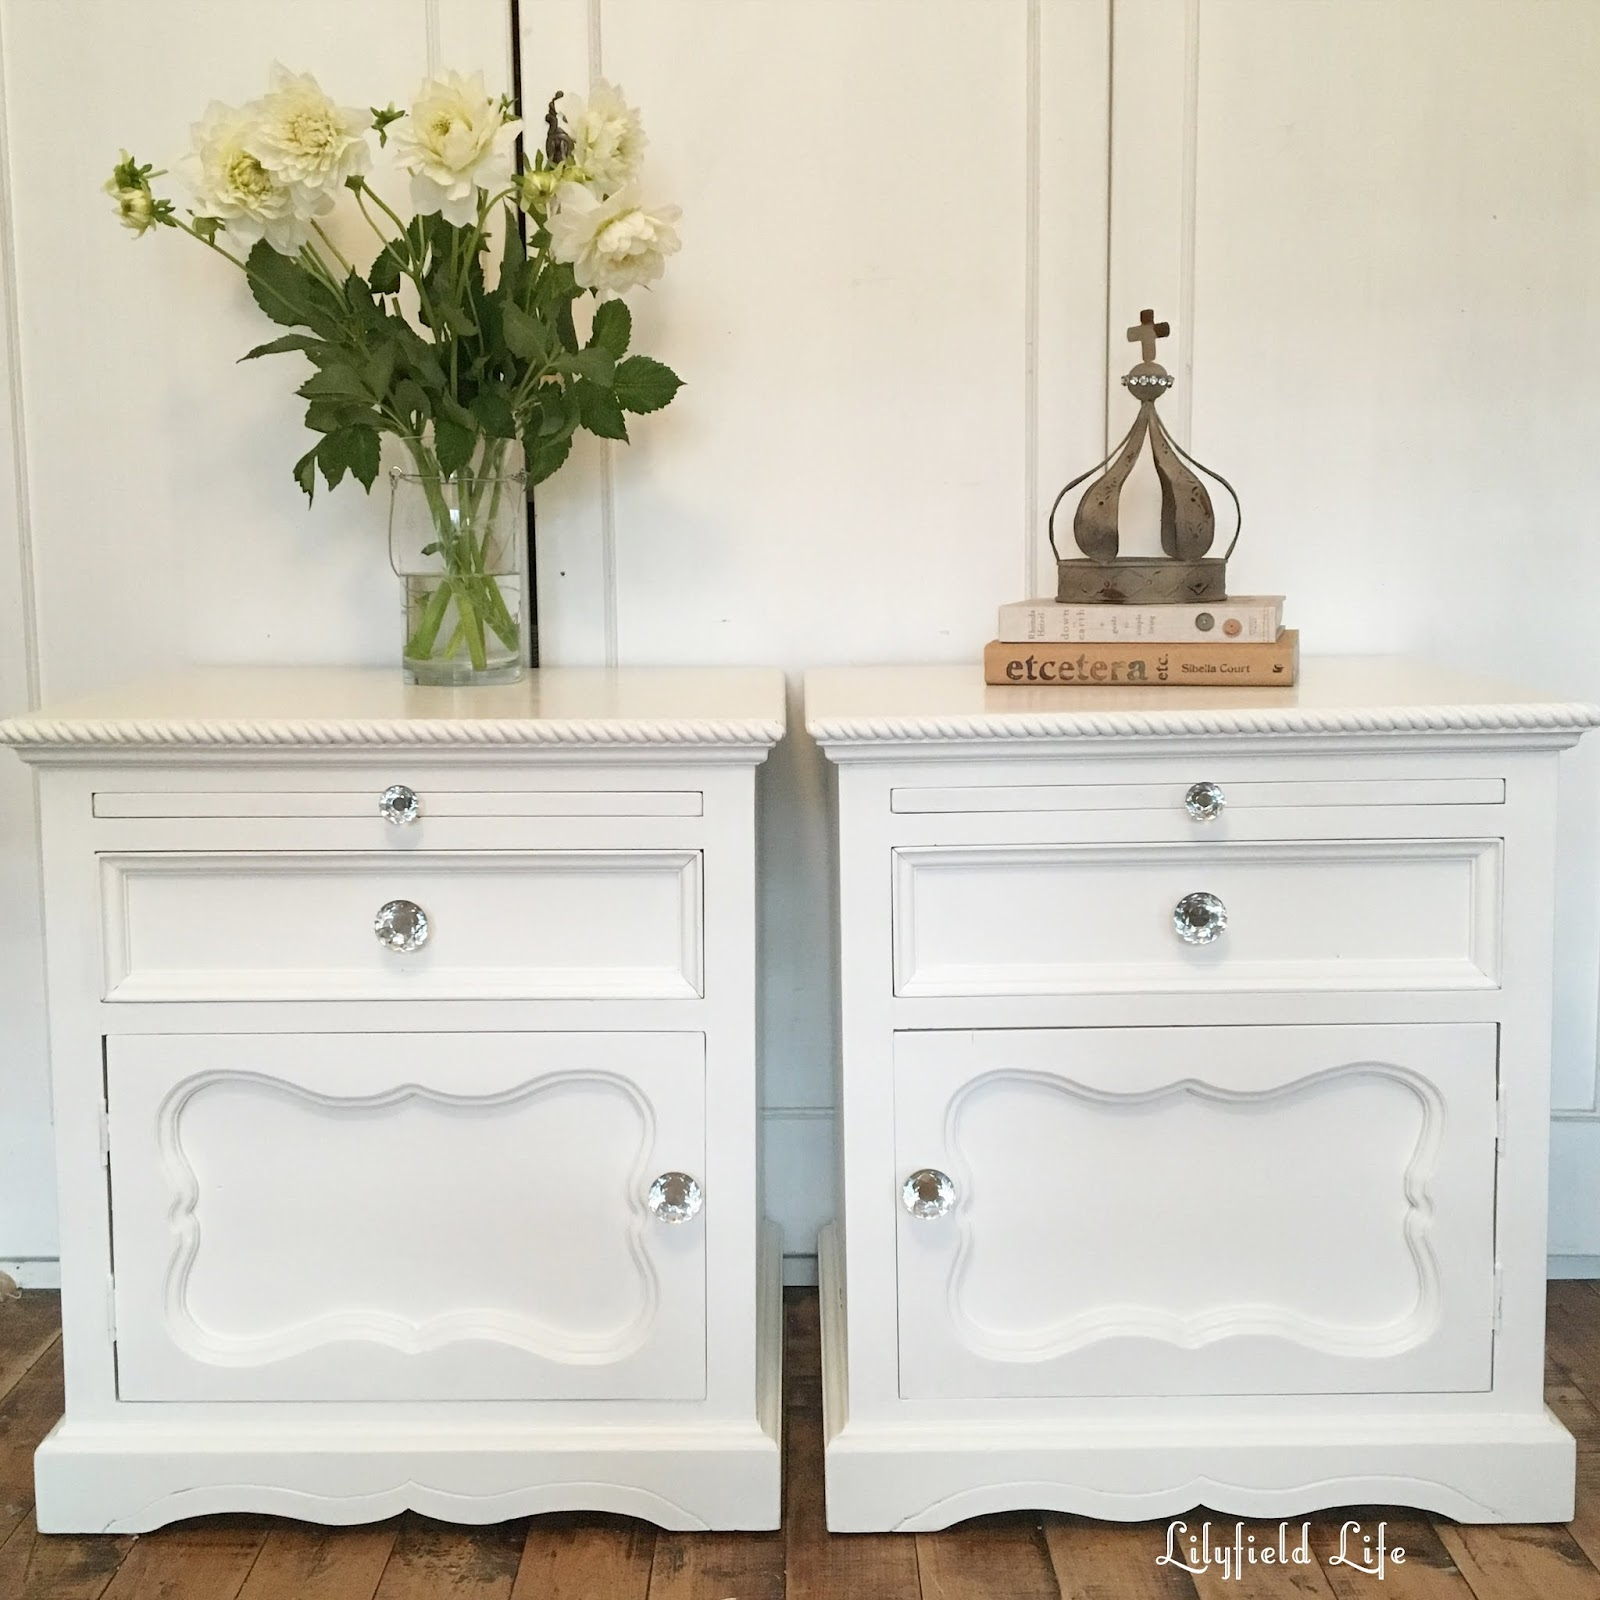 Lilyfield life white bedside tables french style white painted bedsides by lilyfield life watchthetrailerfo